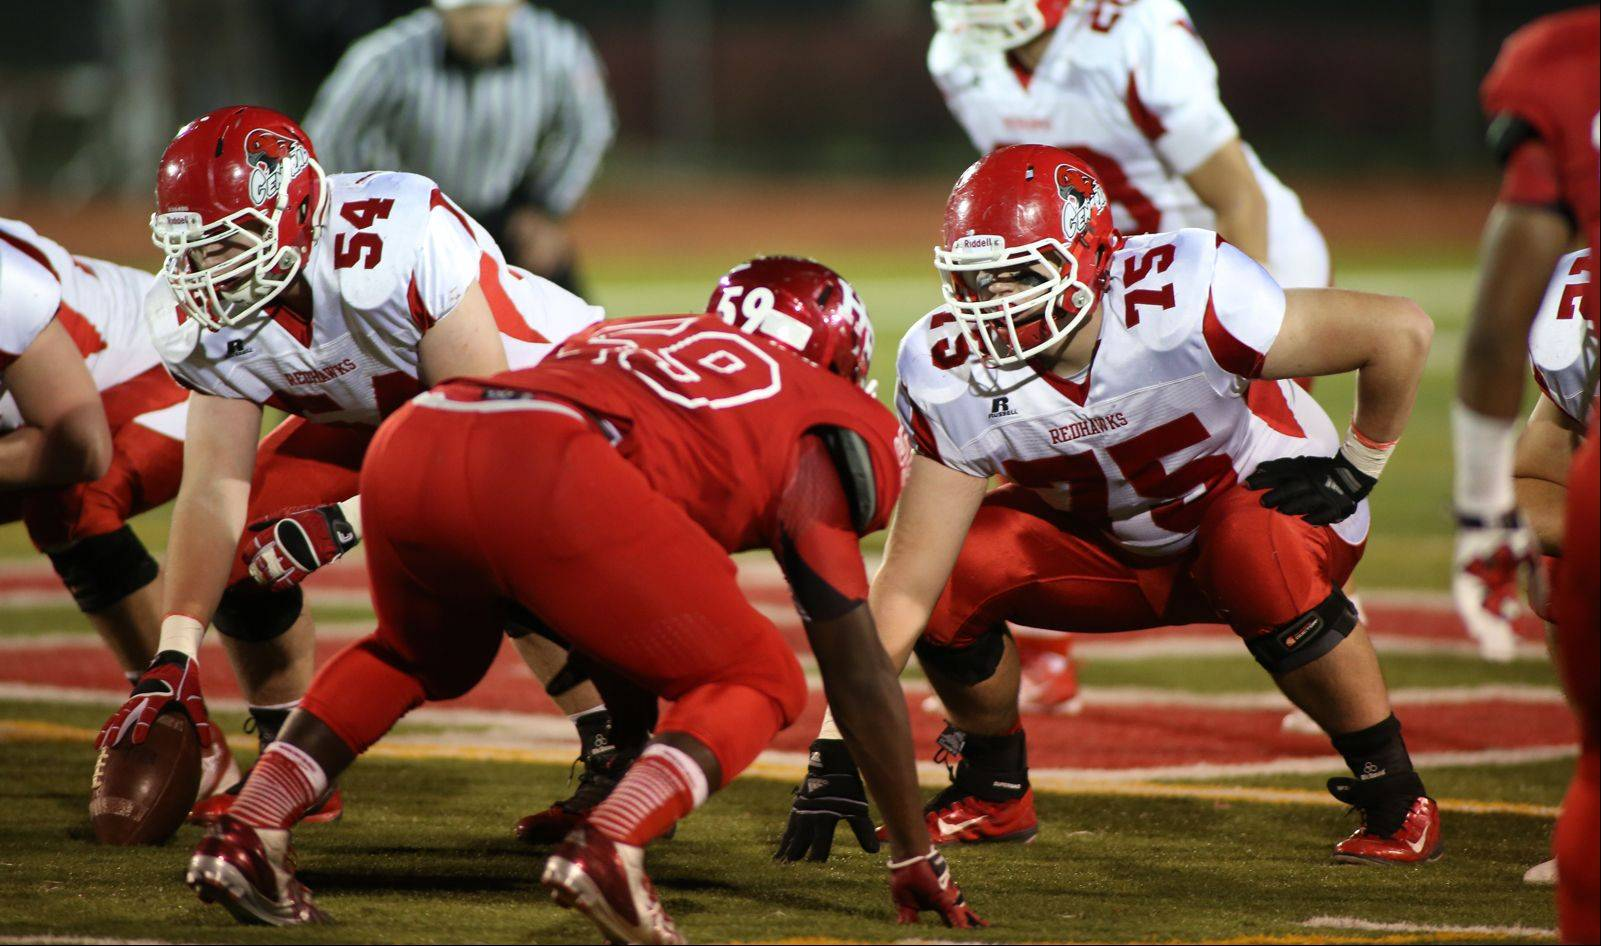 Playoffs -Round Two- Photos from the Naperville Central vs. homewood-Flossmoor football game in Flossmoor on Friday, Nov. 8.